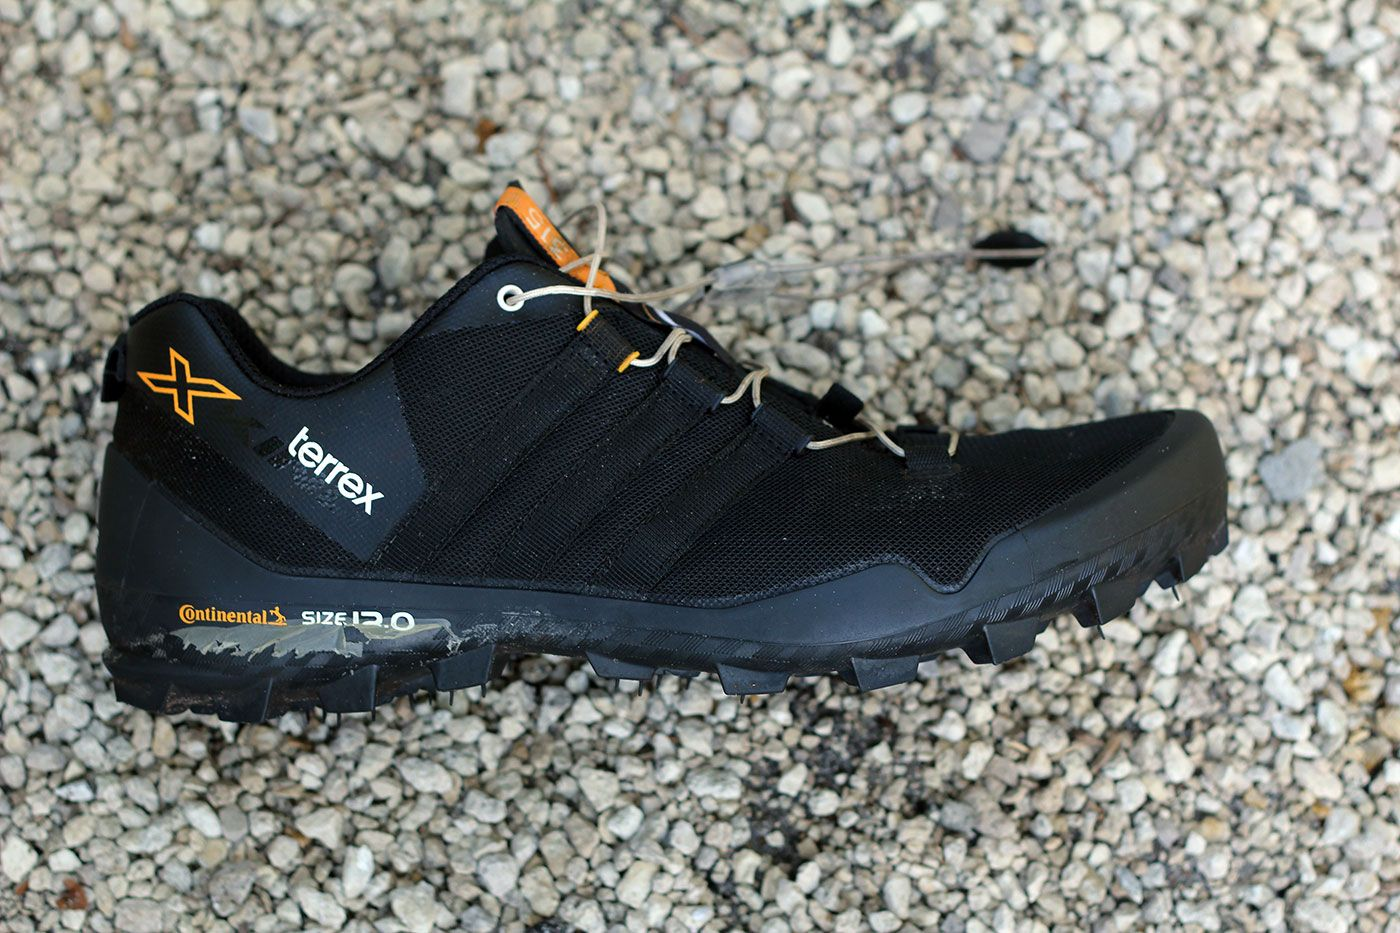 Review: Adidas Outdoor Trail Shoe With 'Mountain Bike' Sole